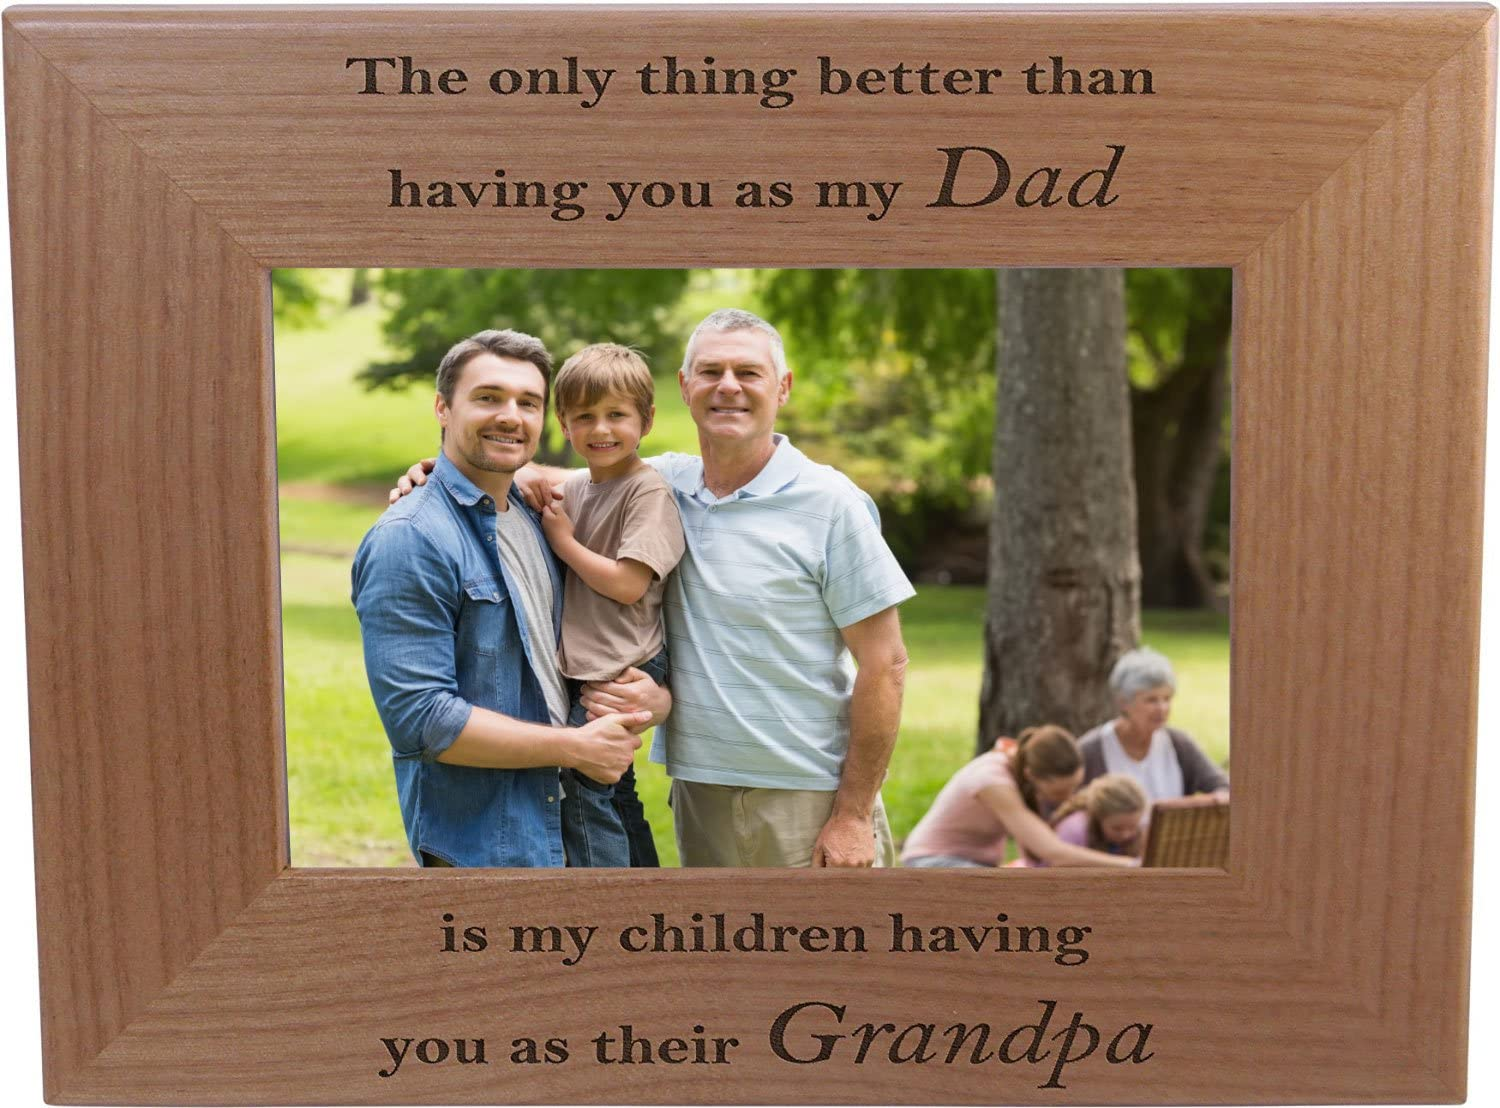 Only thing better than having you as my husband is our children having you as their dad - 4x6 Wood Picture Frame - Great Gift for Fathers Day Birthday, Christmas Gift for Dad Husband